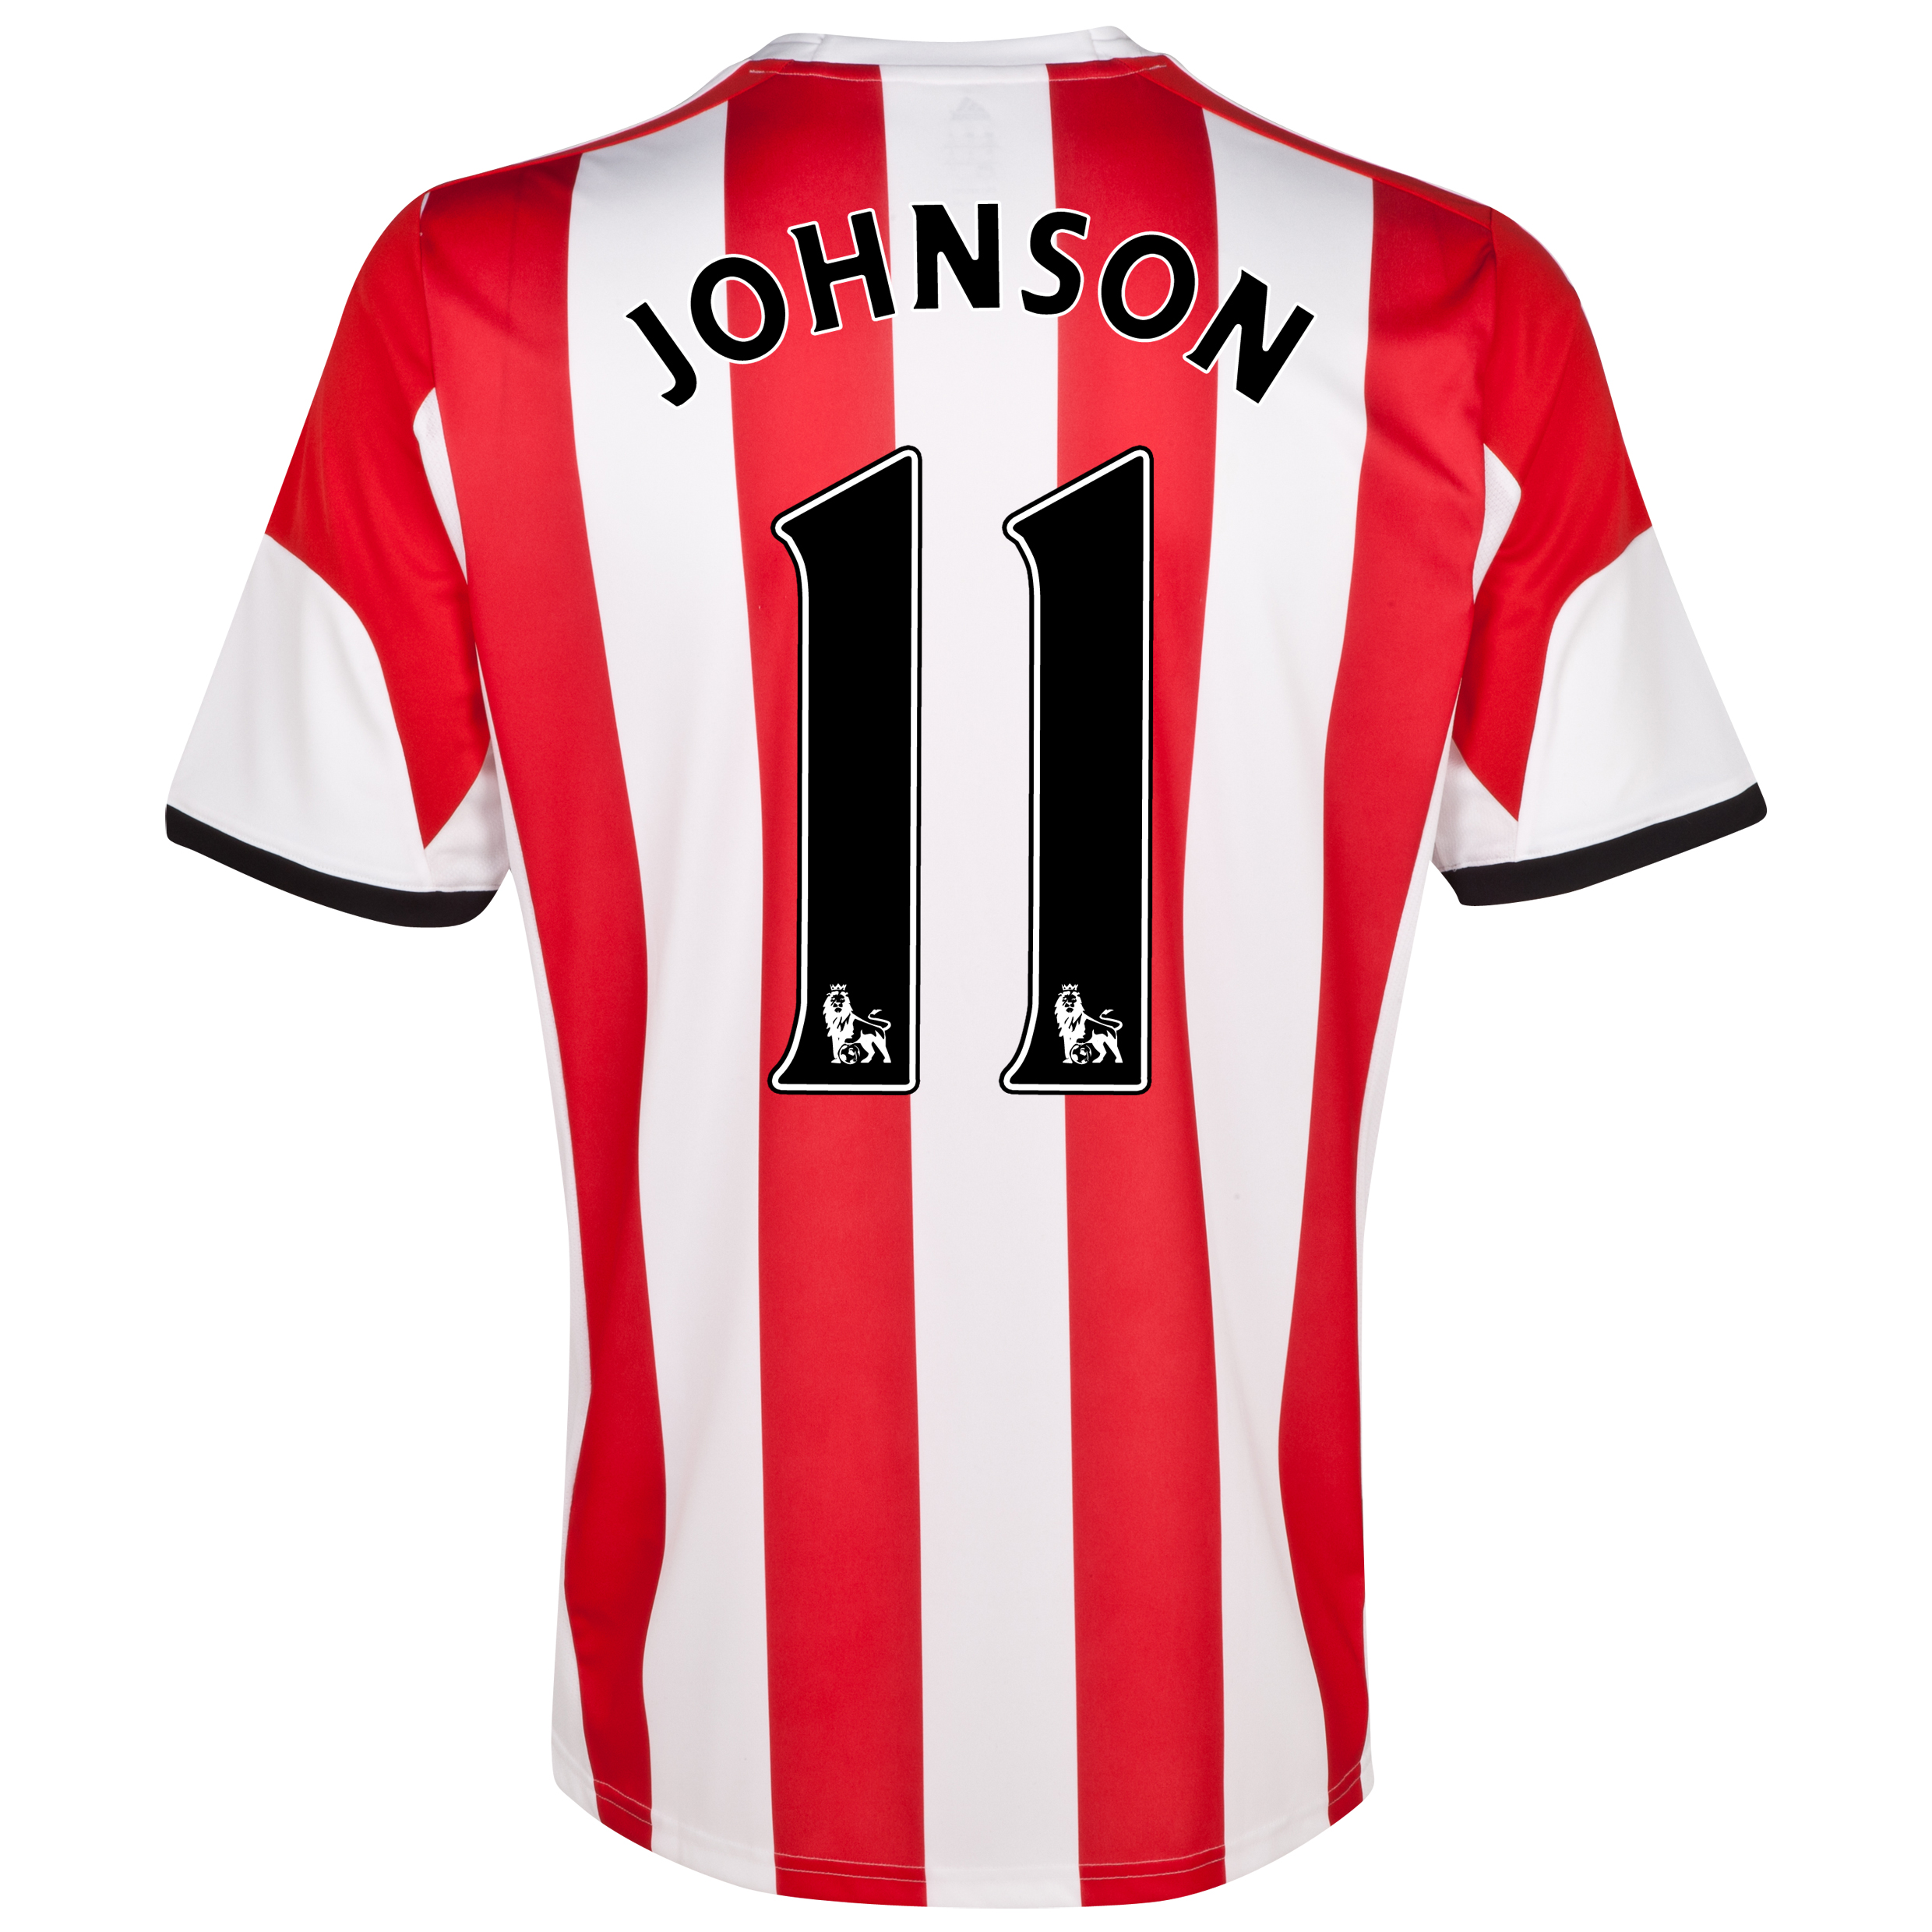 Sunderland Home Shirt 2013/14  with Johnson 11 printing